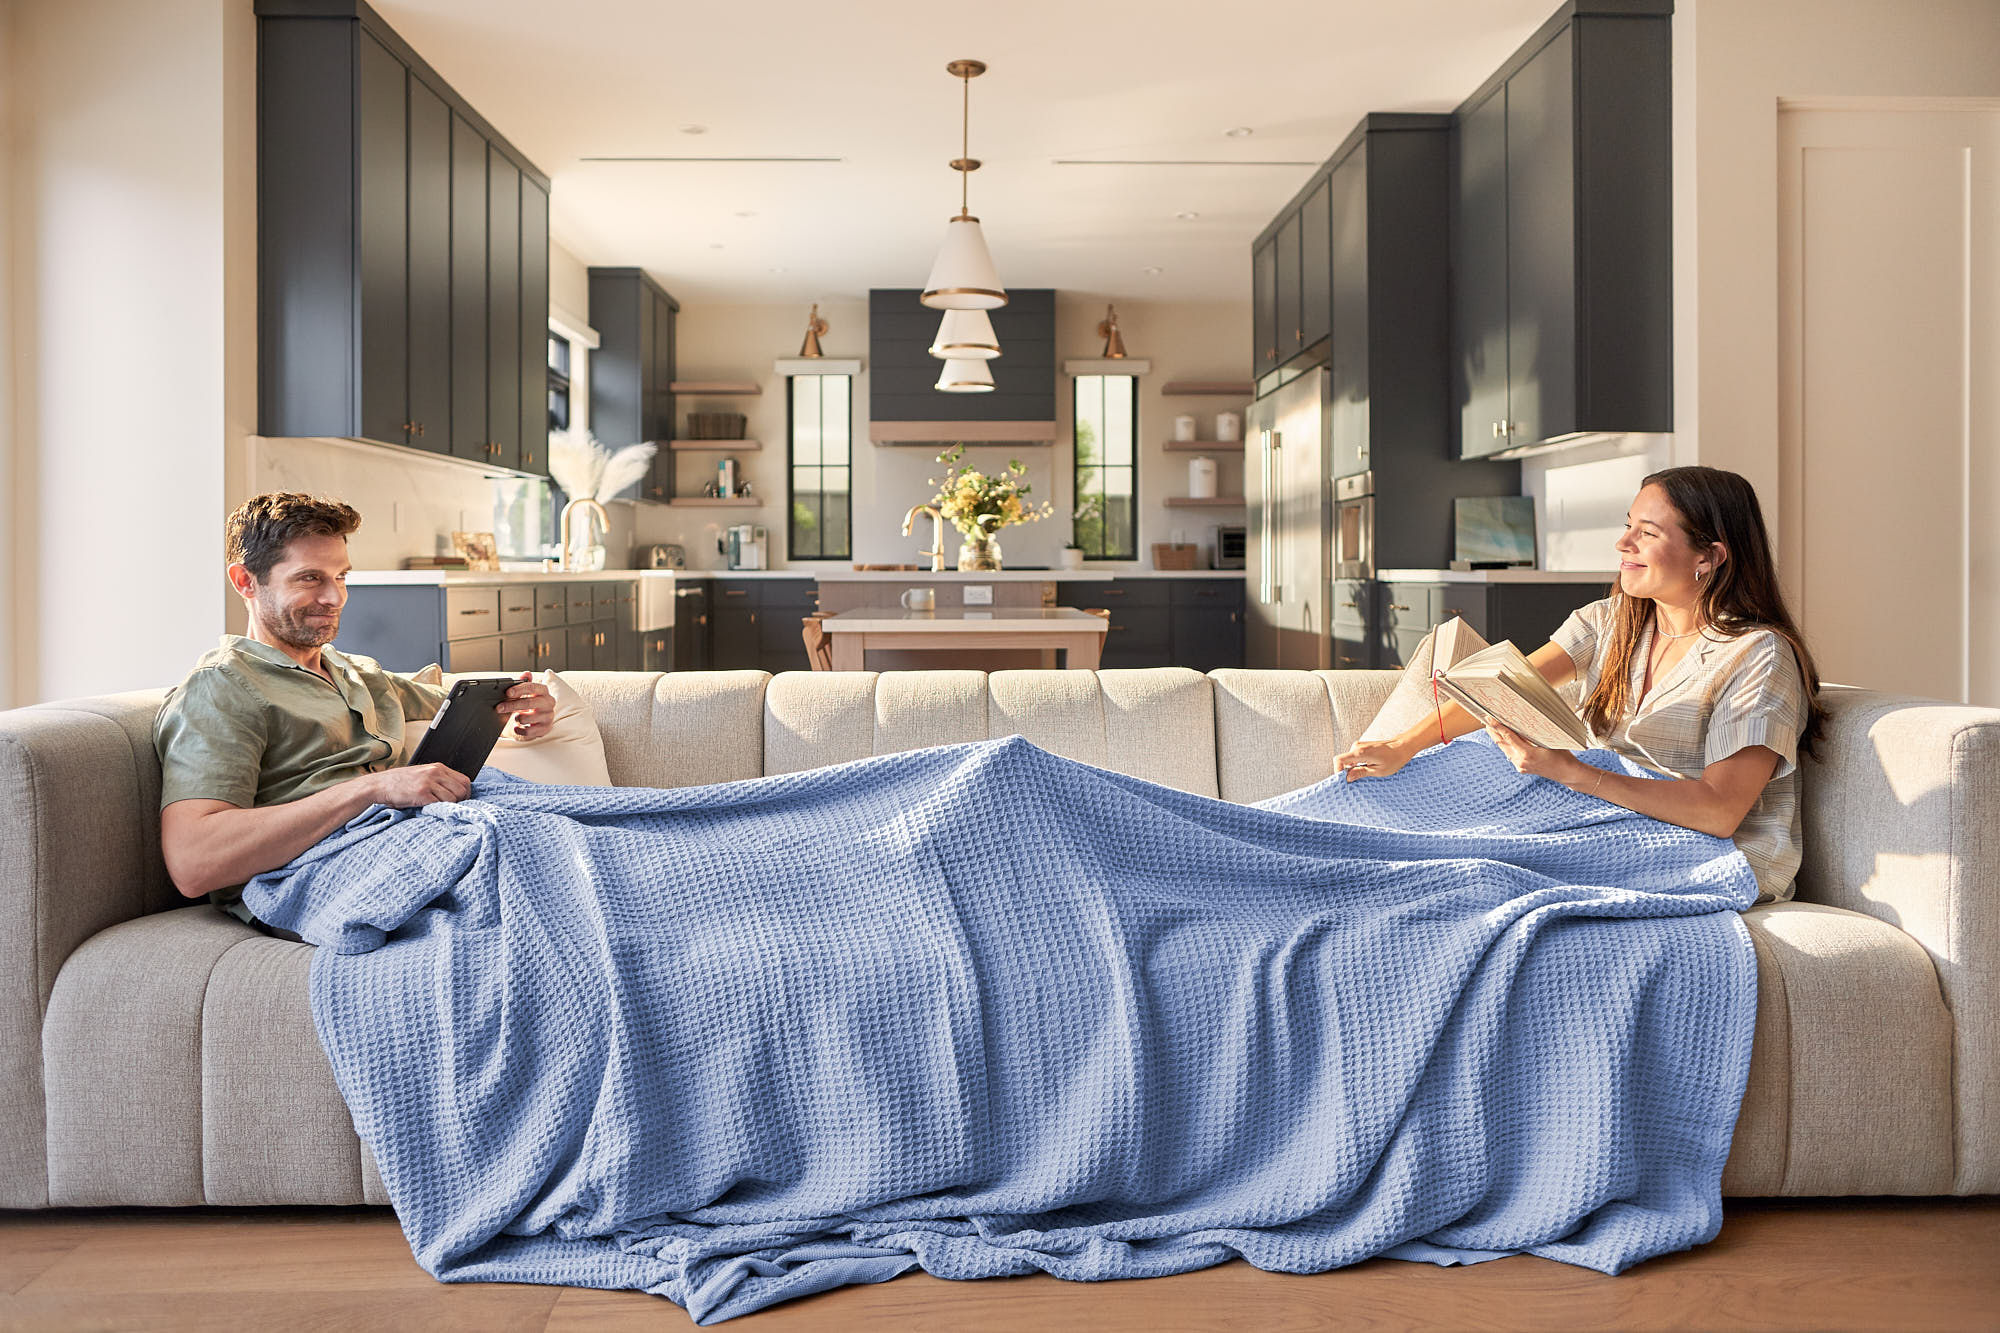 2021 Home-Making Wedding Gifts from Bedsure Home